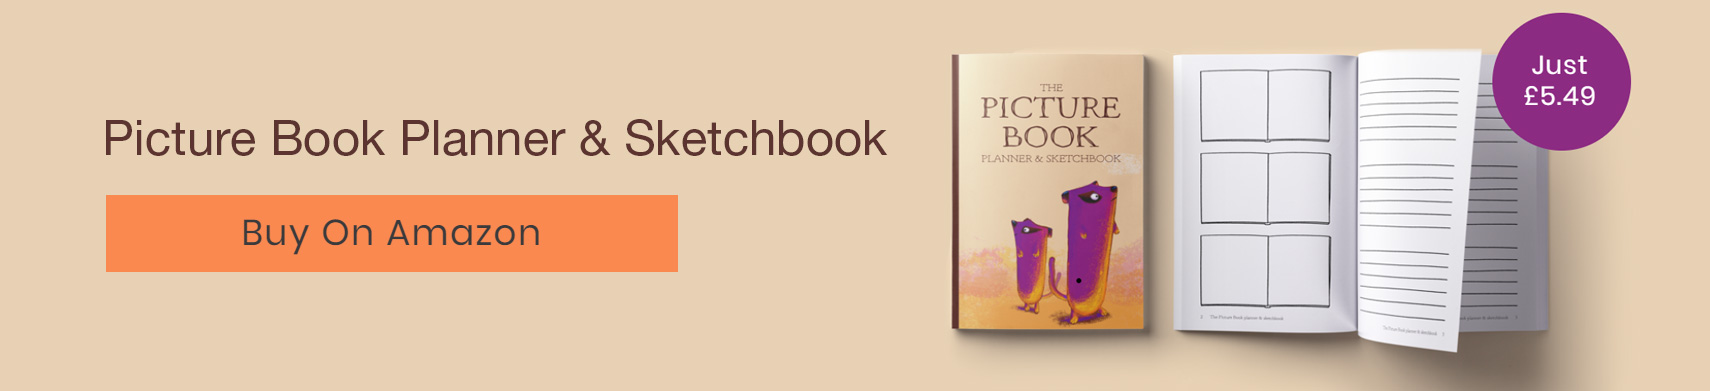 Picture Book Planner and Sketchbook - Alan O'Rourke